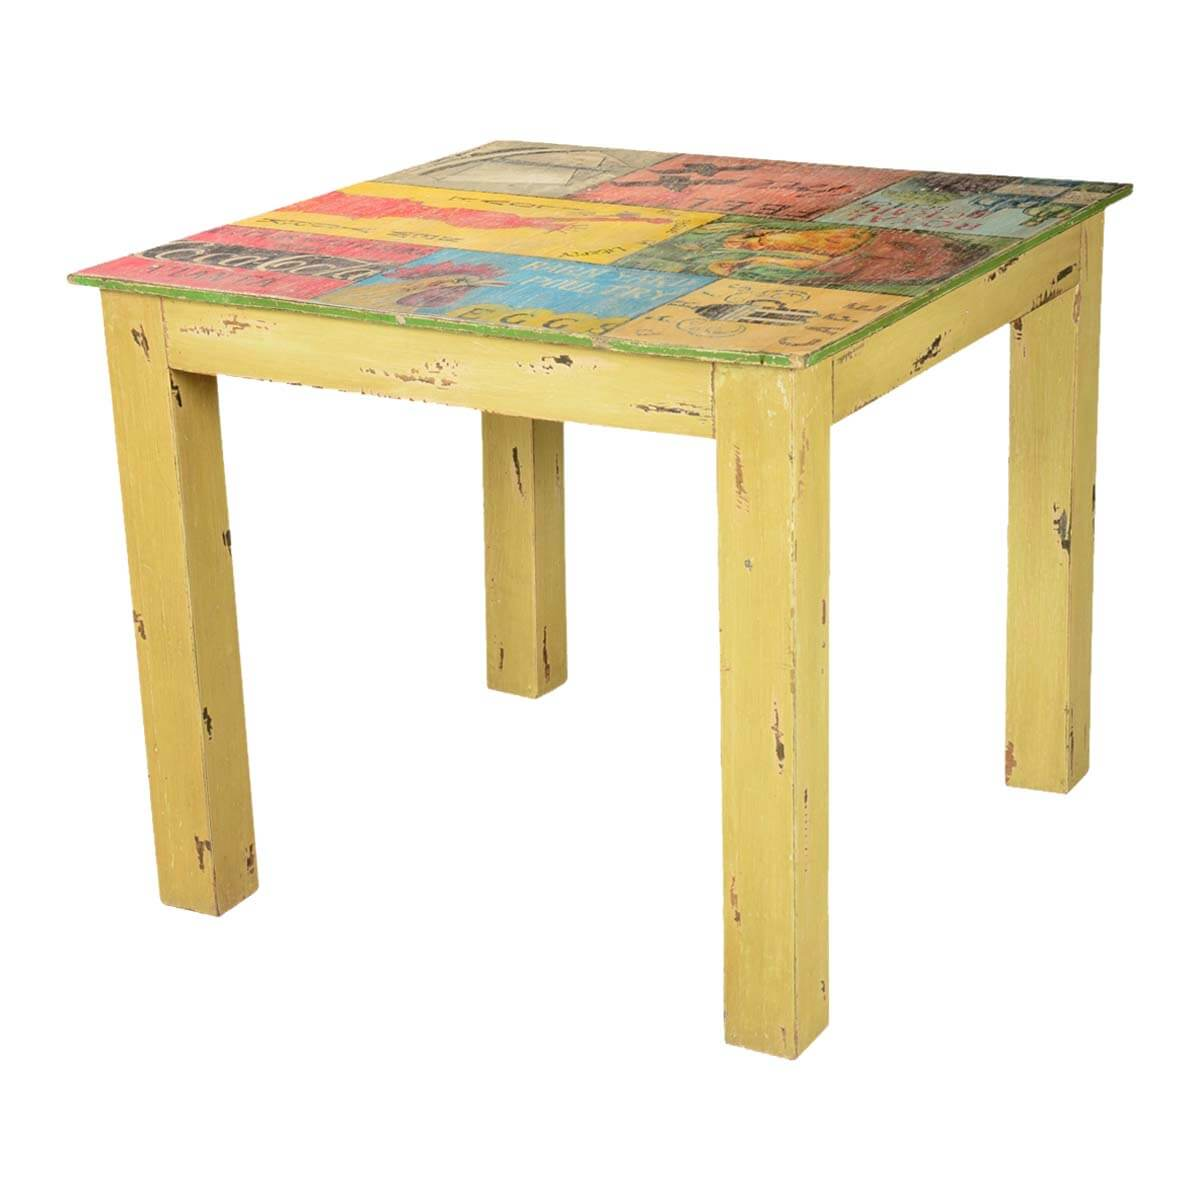 Pop Art Labels Mango Wood Yellow 35quot Square Dining Table : 6938 from www.sierralivingconcepts.com size 1200 x 1200 jpeg 87kB